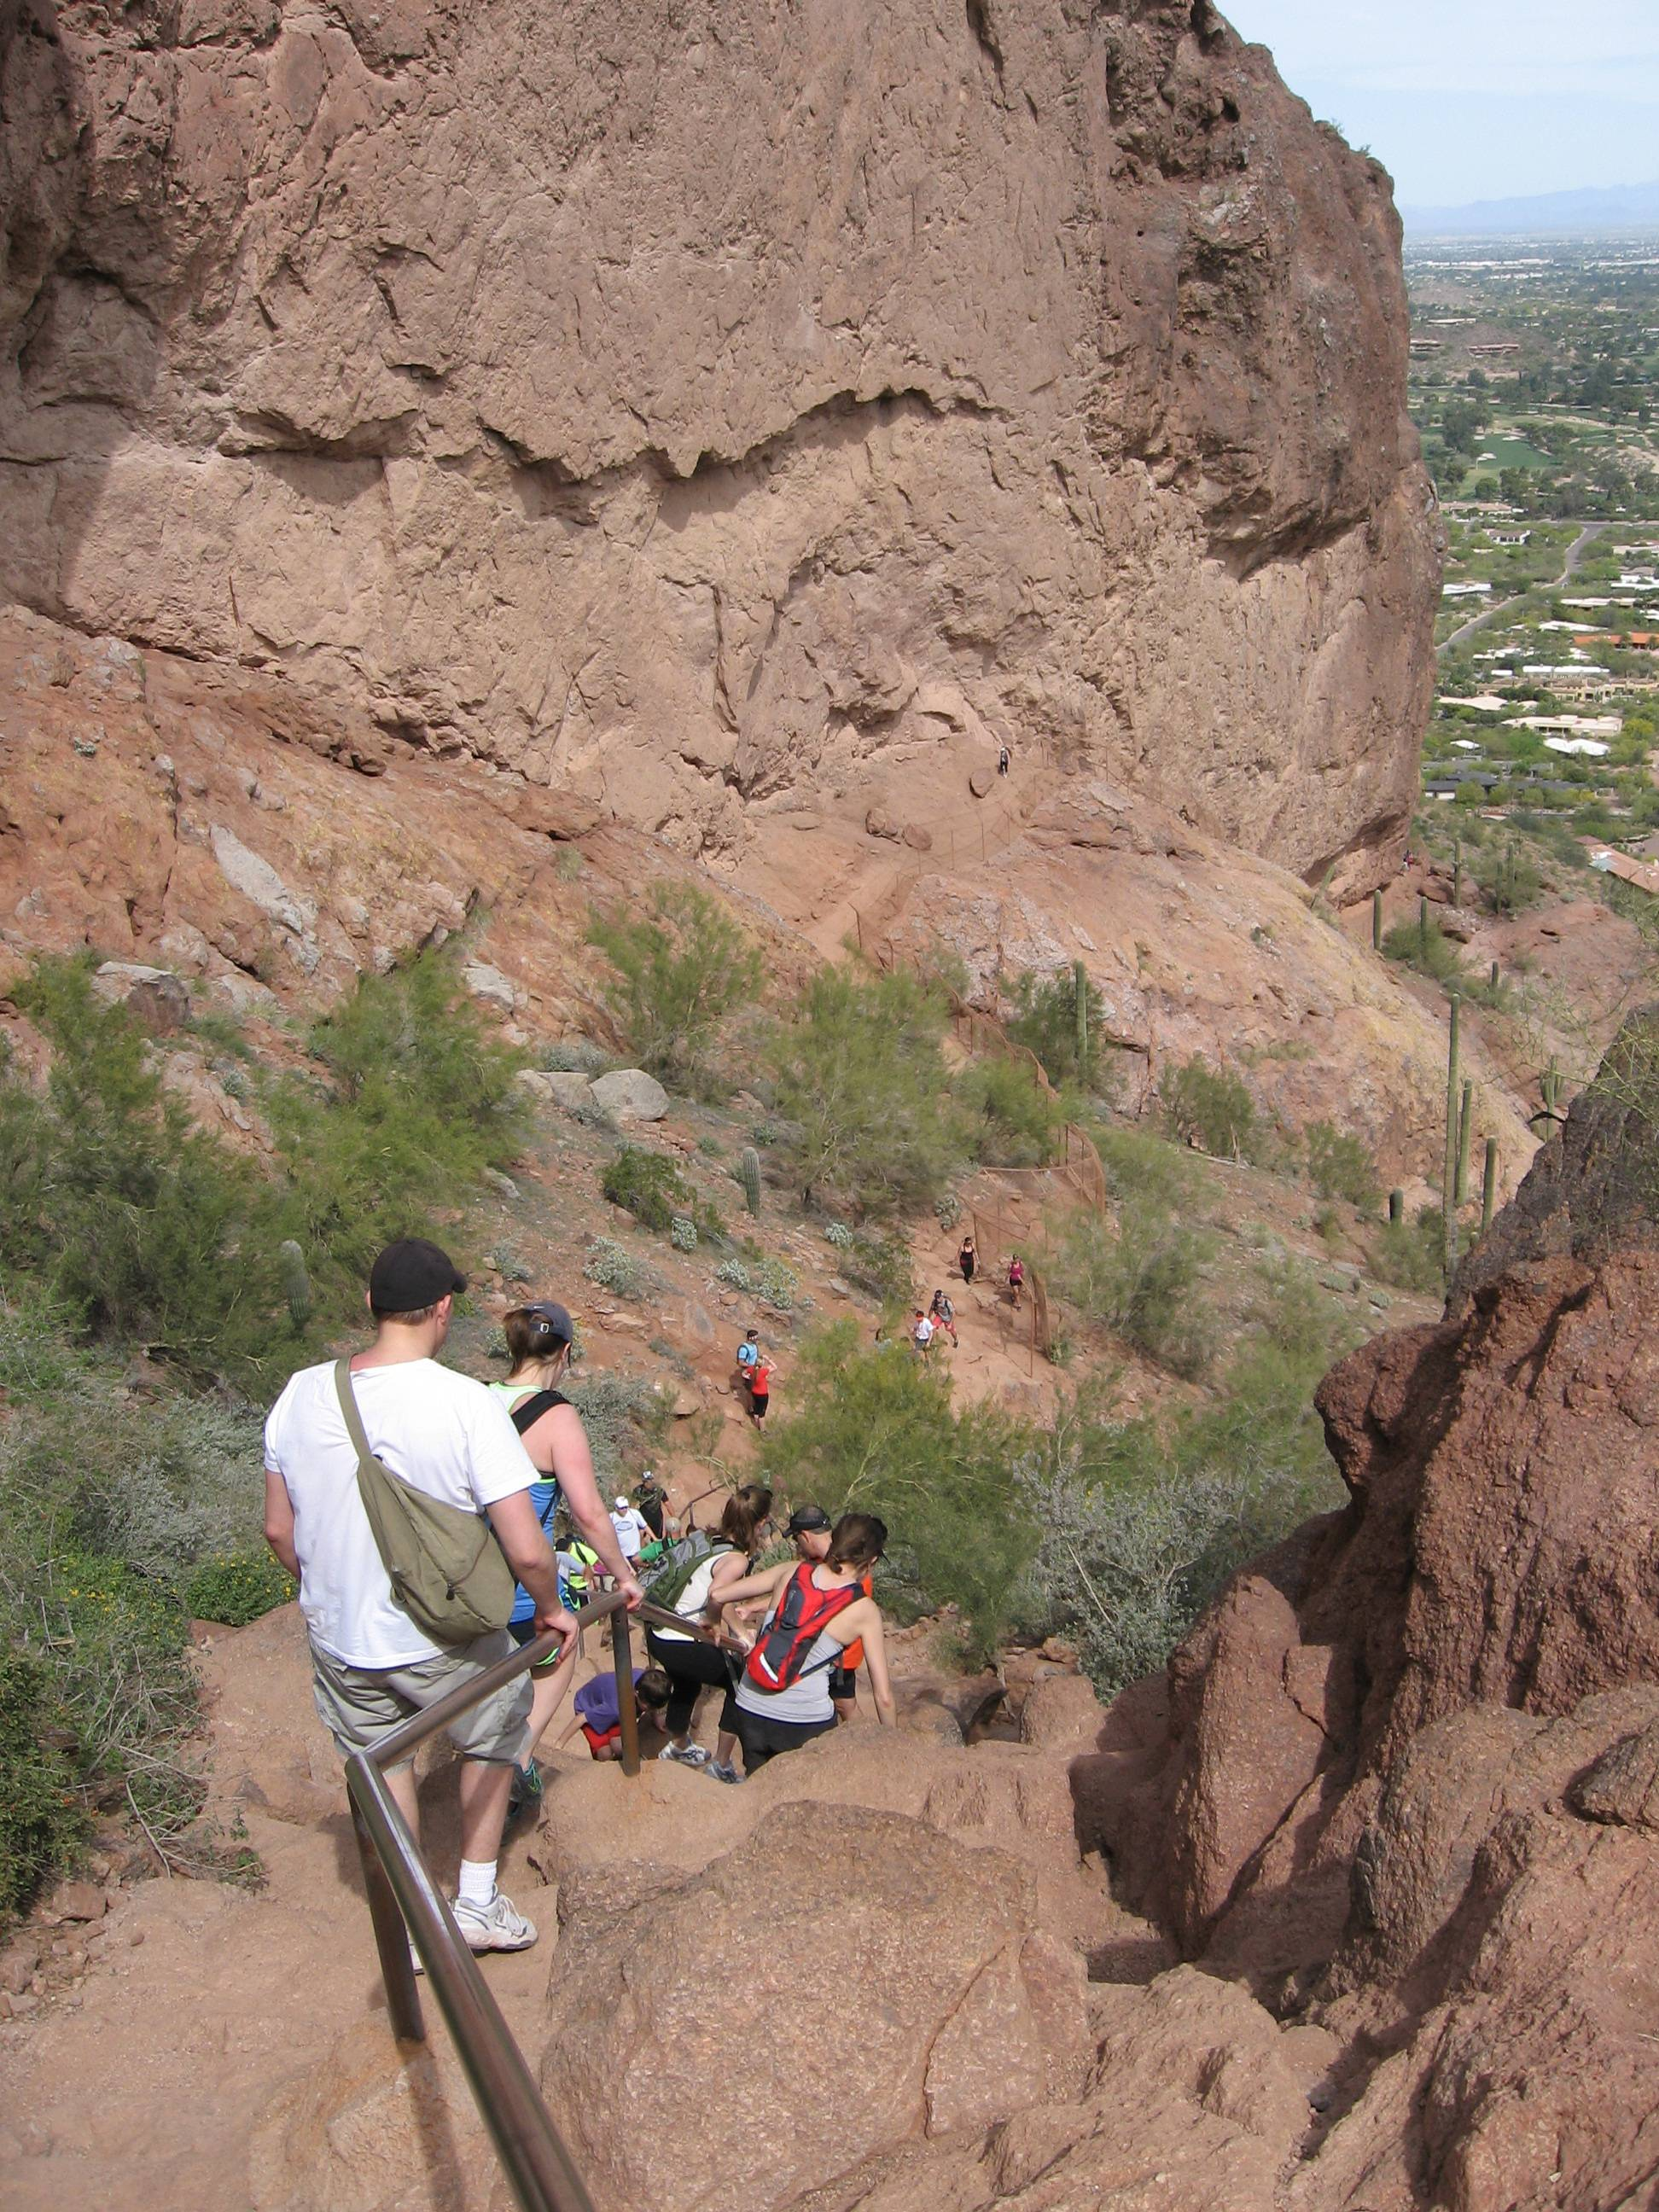 Visitors descend a steep portion of the Camelback Mountain trail in Phoenix, Ariz. The 2,704-foot-high mountain offers 360-degree views of distant mountain ranges and closer views of golf courses and pools, all framed by tall saguaros and blooming wildflowers.